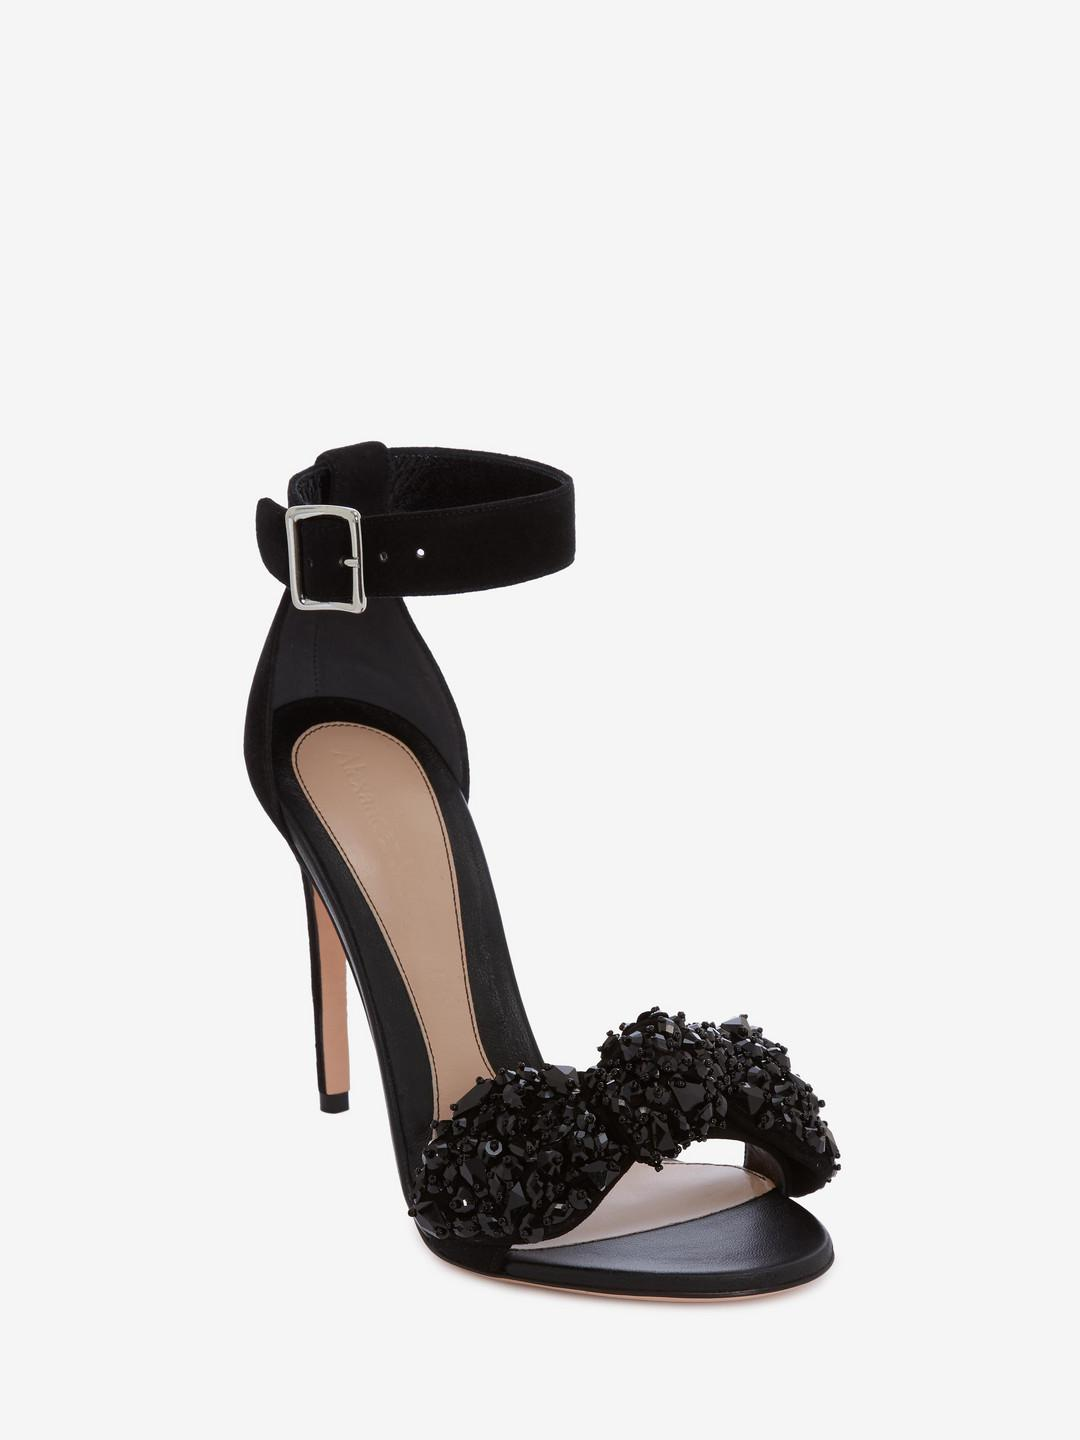 577b2f6810e9 Lyst - Alexander Mcqueen Bow Embroidered Sandal in Black